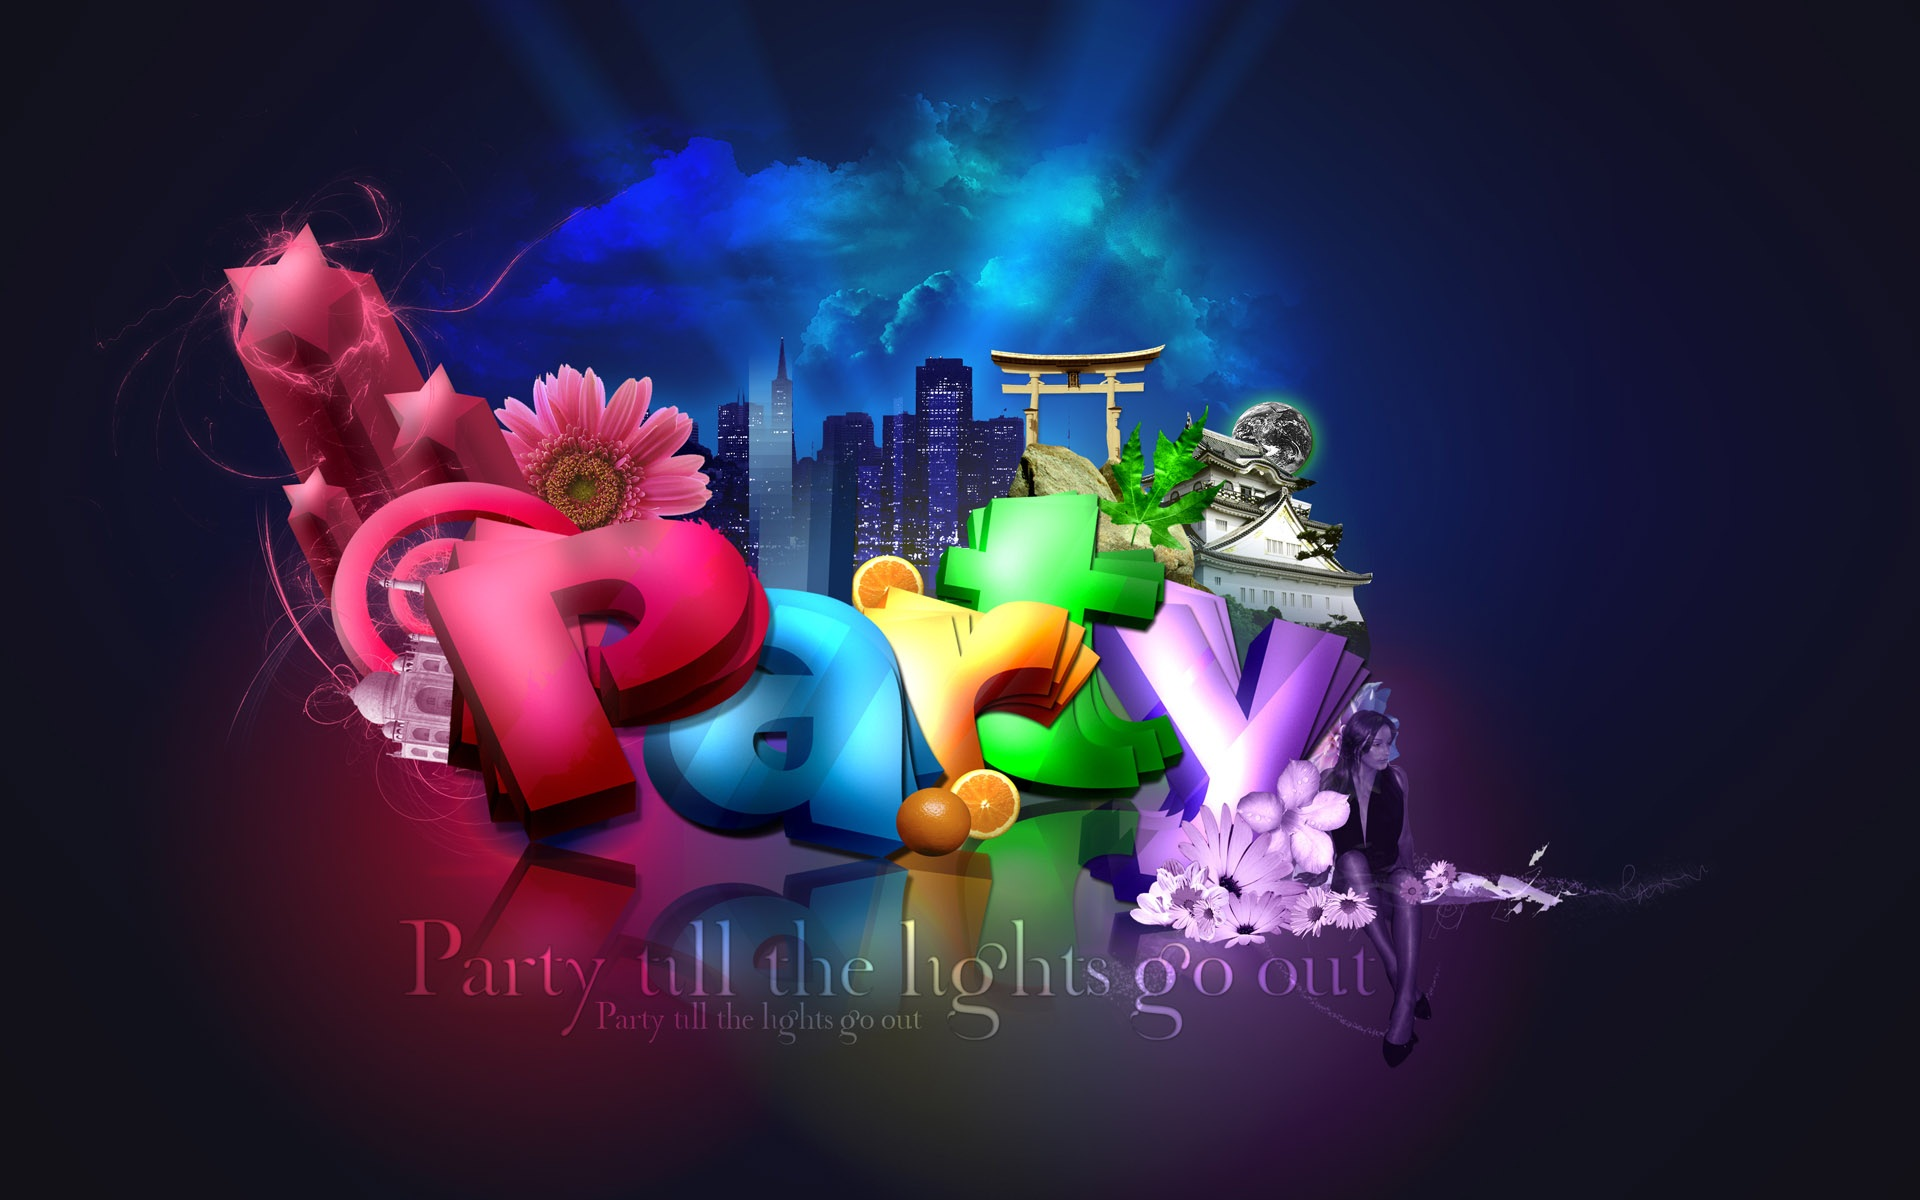 Best Iphone 4s Wallpapers Hd Wallpaper 3d Colorful Party 1920x1200 Hd Picture Image